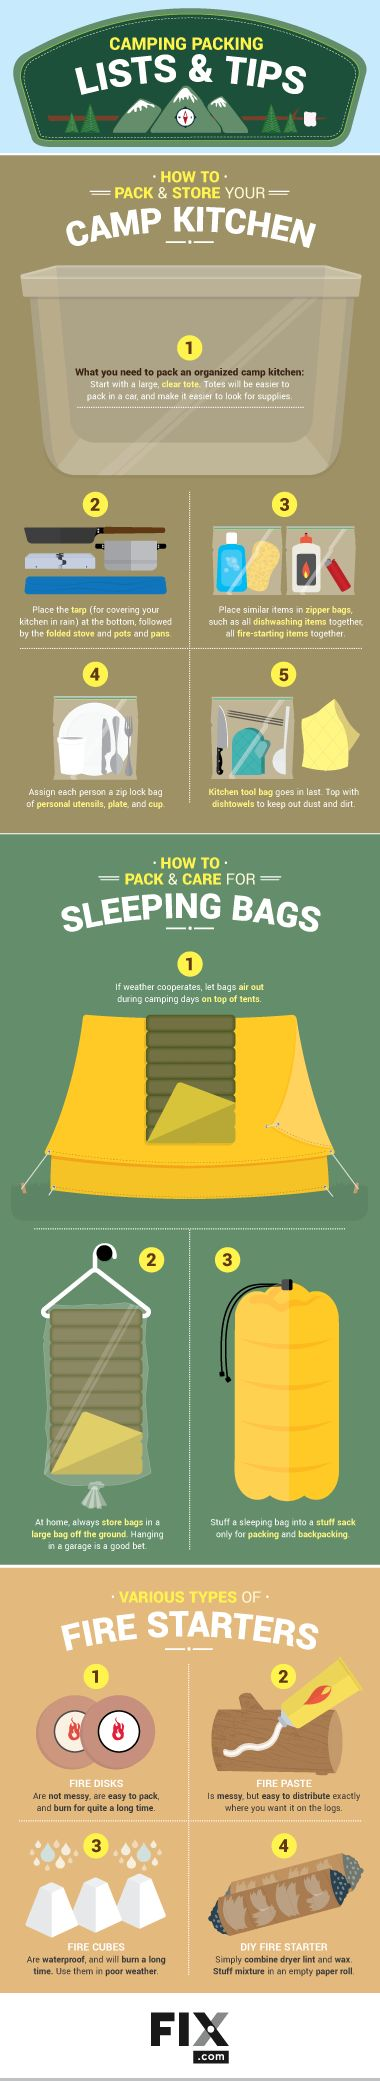 This comprehensive list tells you everything you need to bring on a family camping trip, and some smart hacks for the campsite, too!